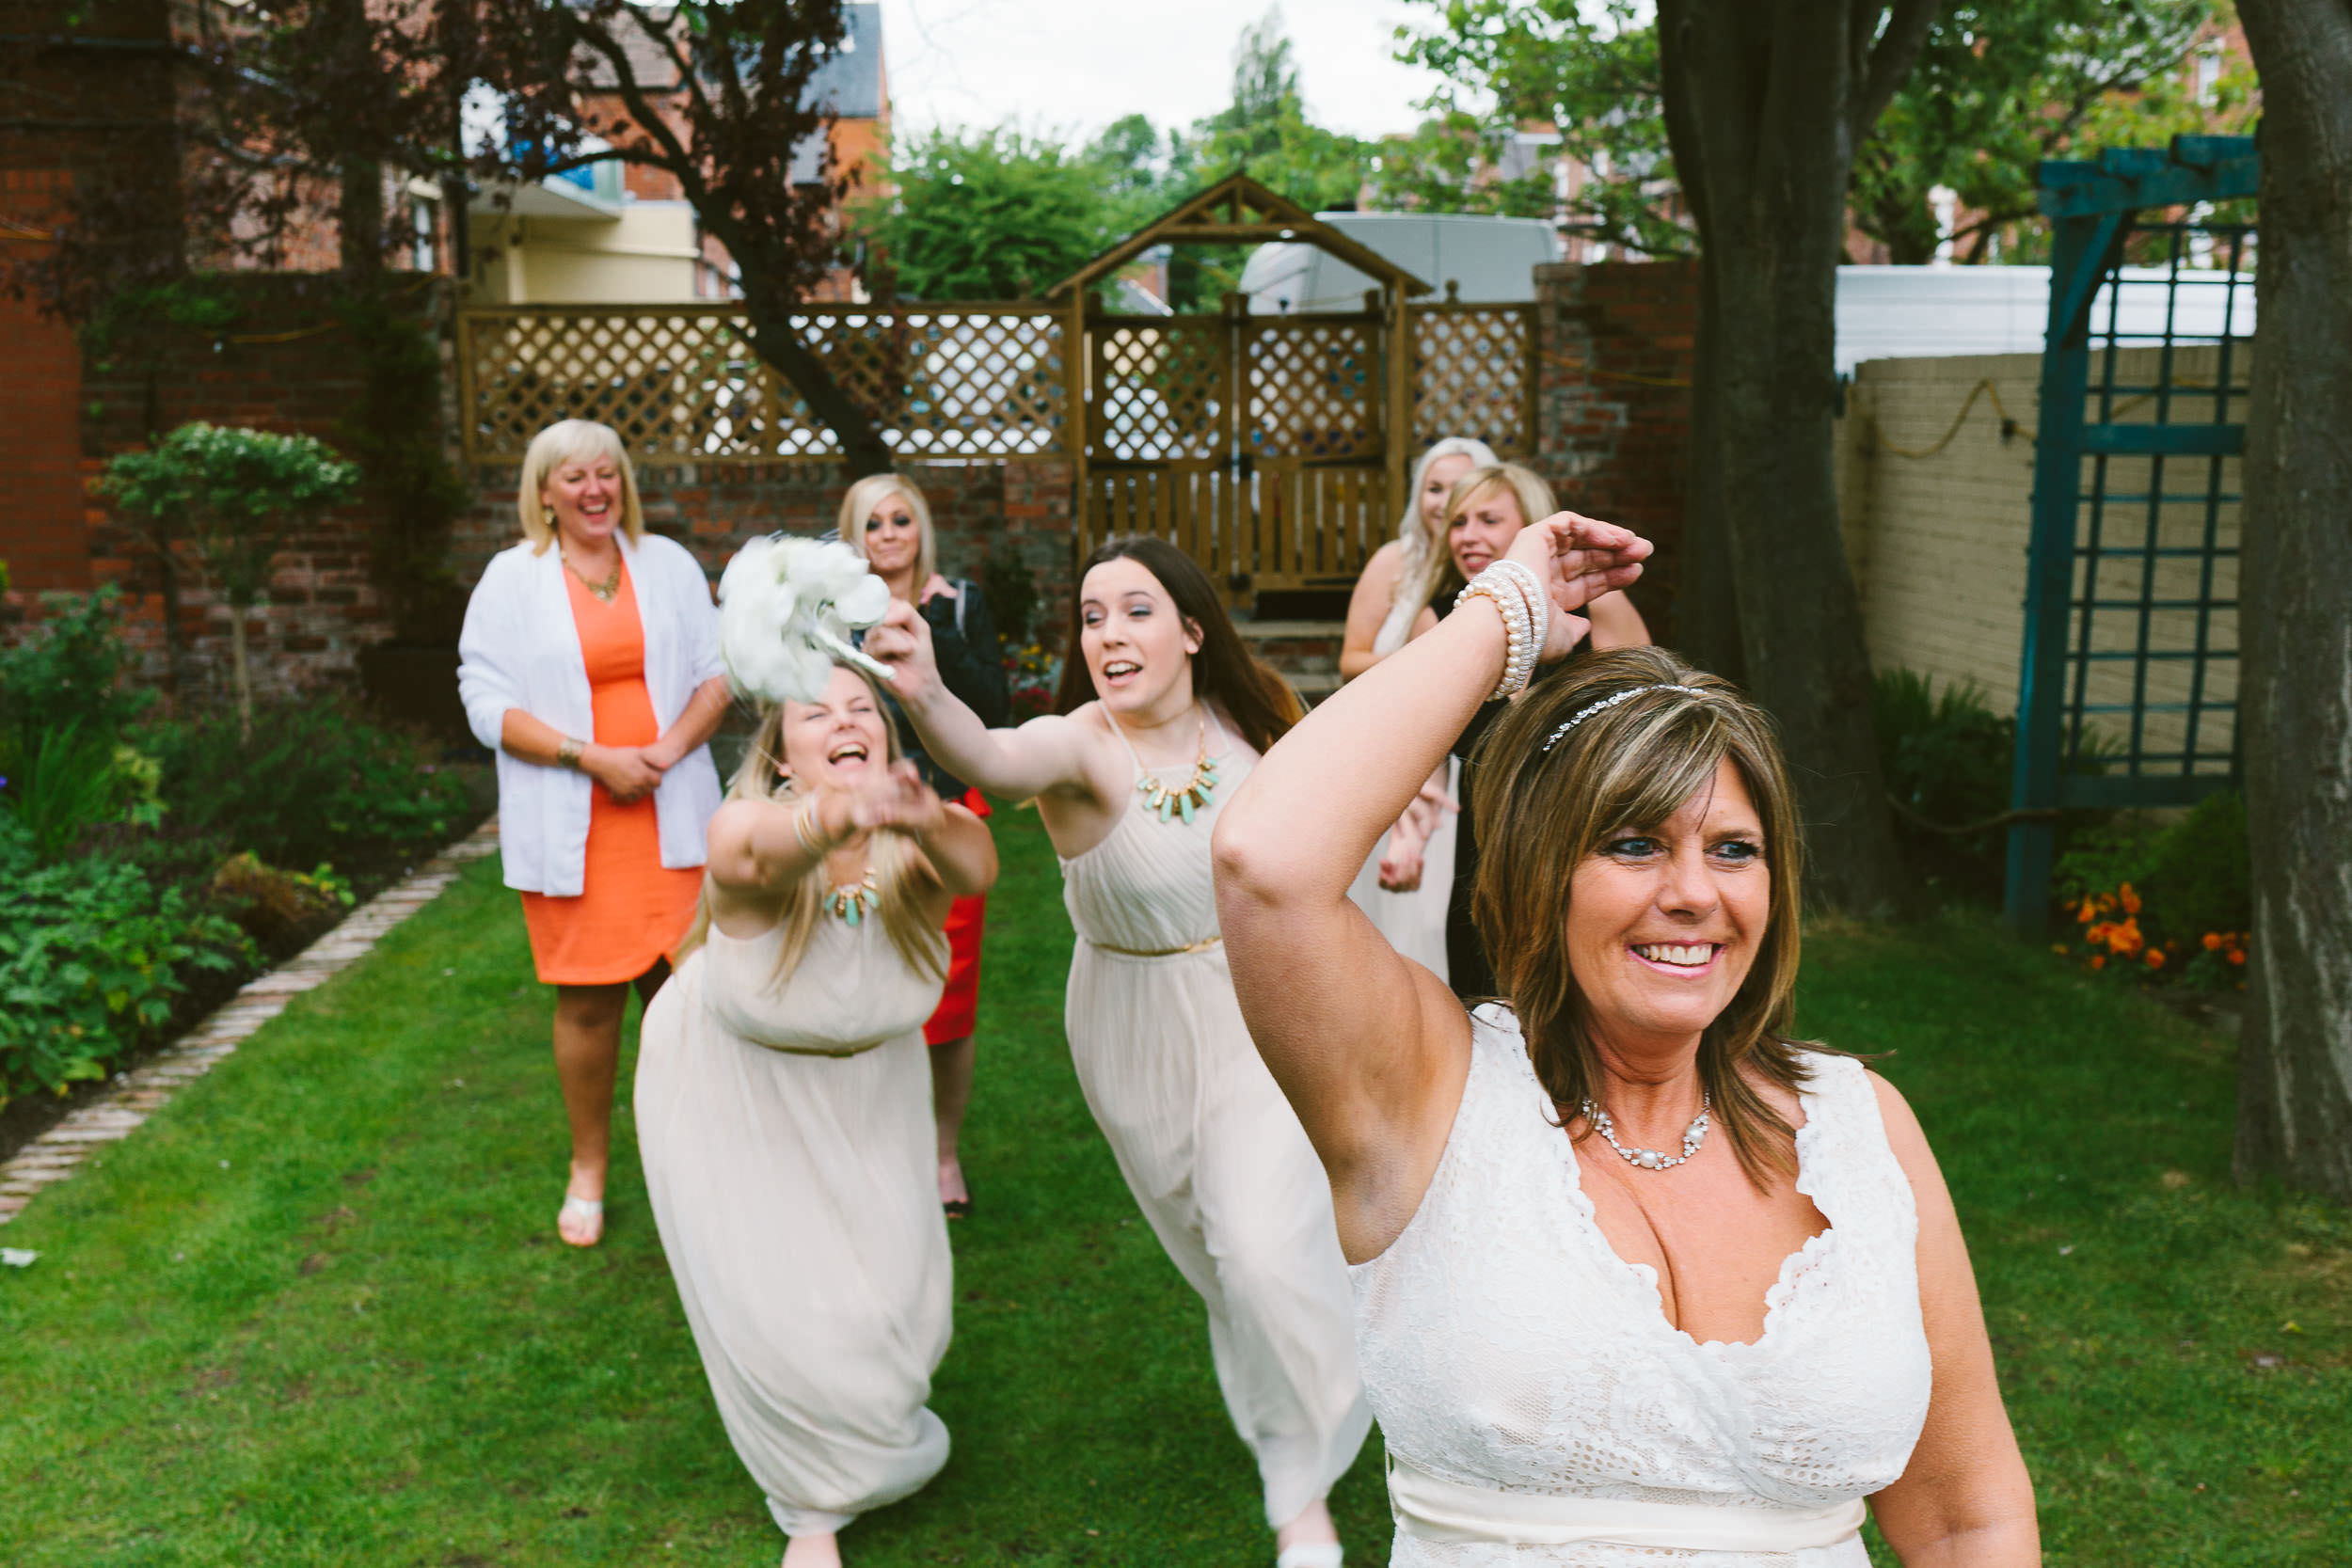 The bride throws the bouquet and the bridesmaids leap to catch it